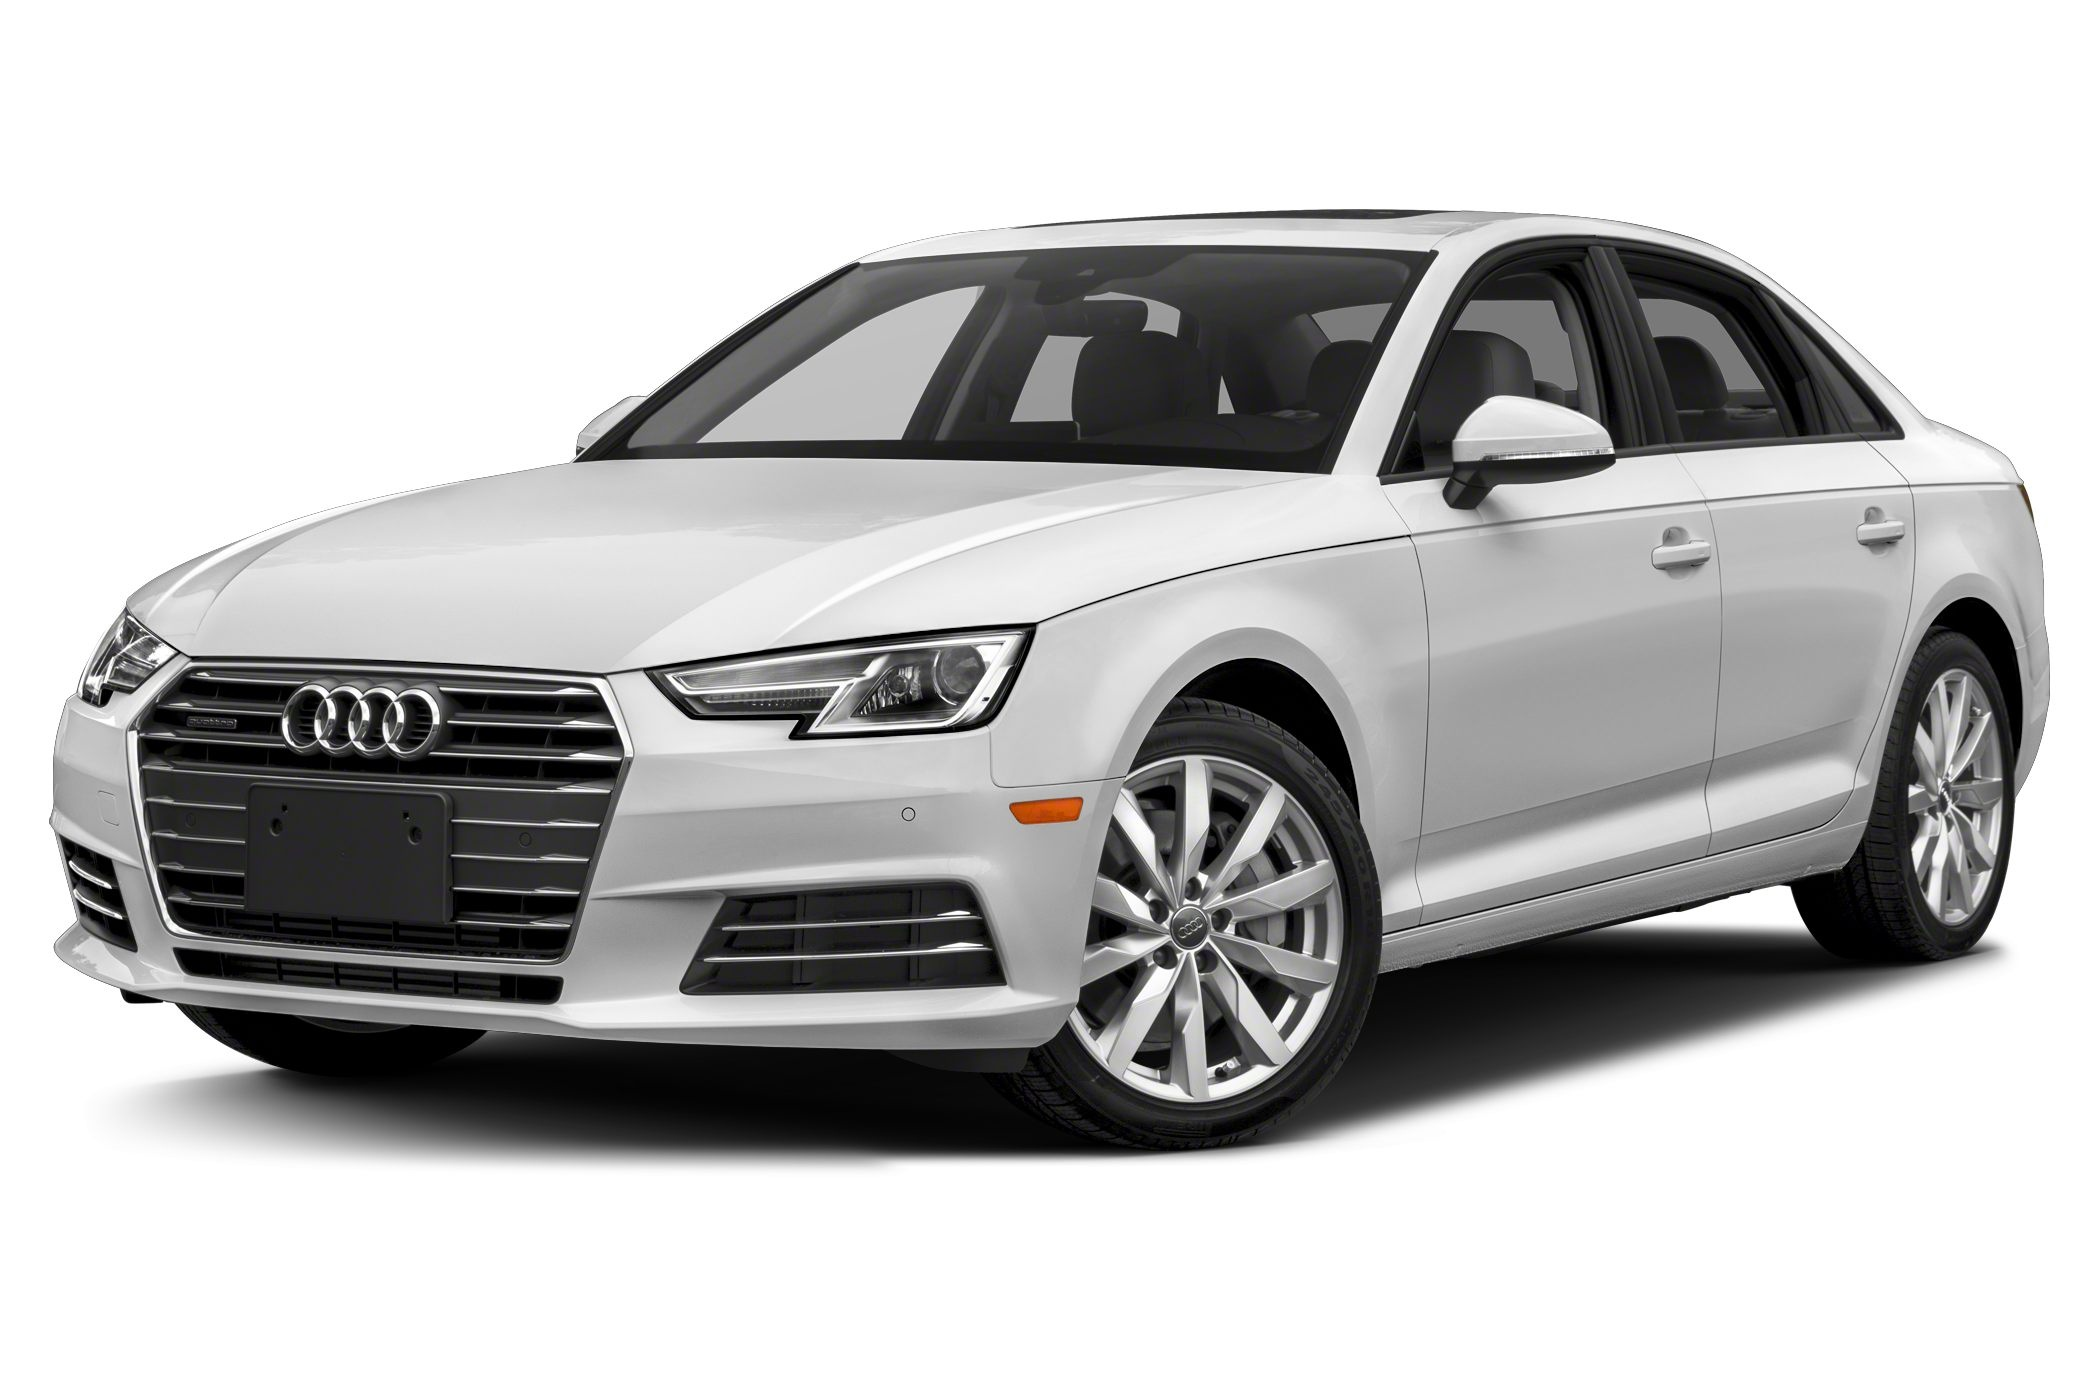 Audi A4 S Line Modified Lovely 2018 Audi A4 Pictures-1251 Of Lovely Audi A4 S Line Modified-1251